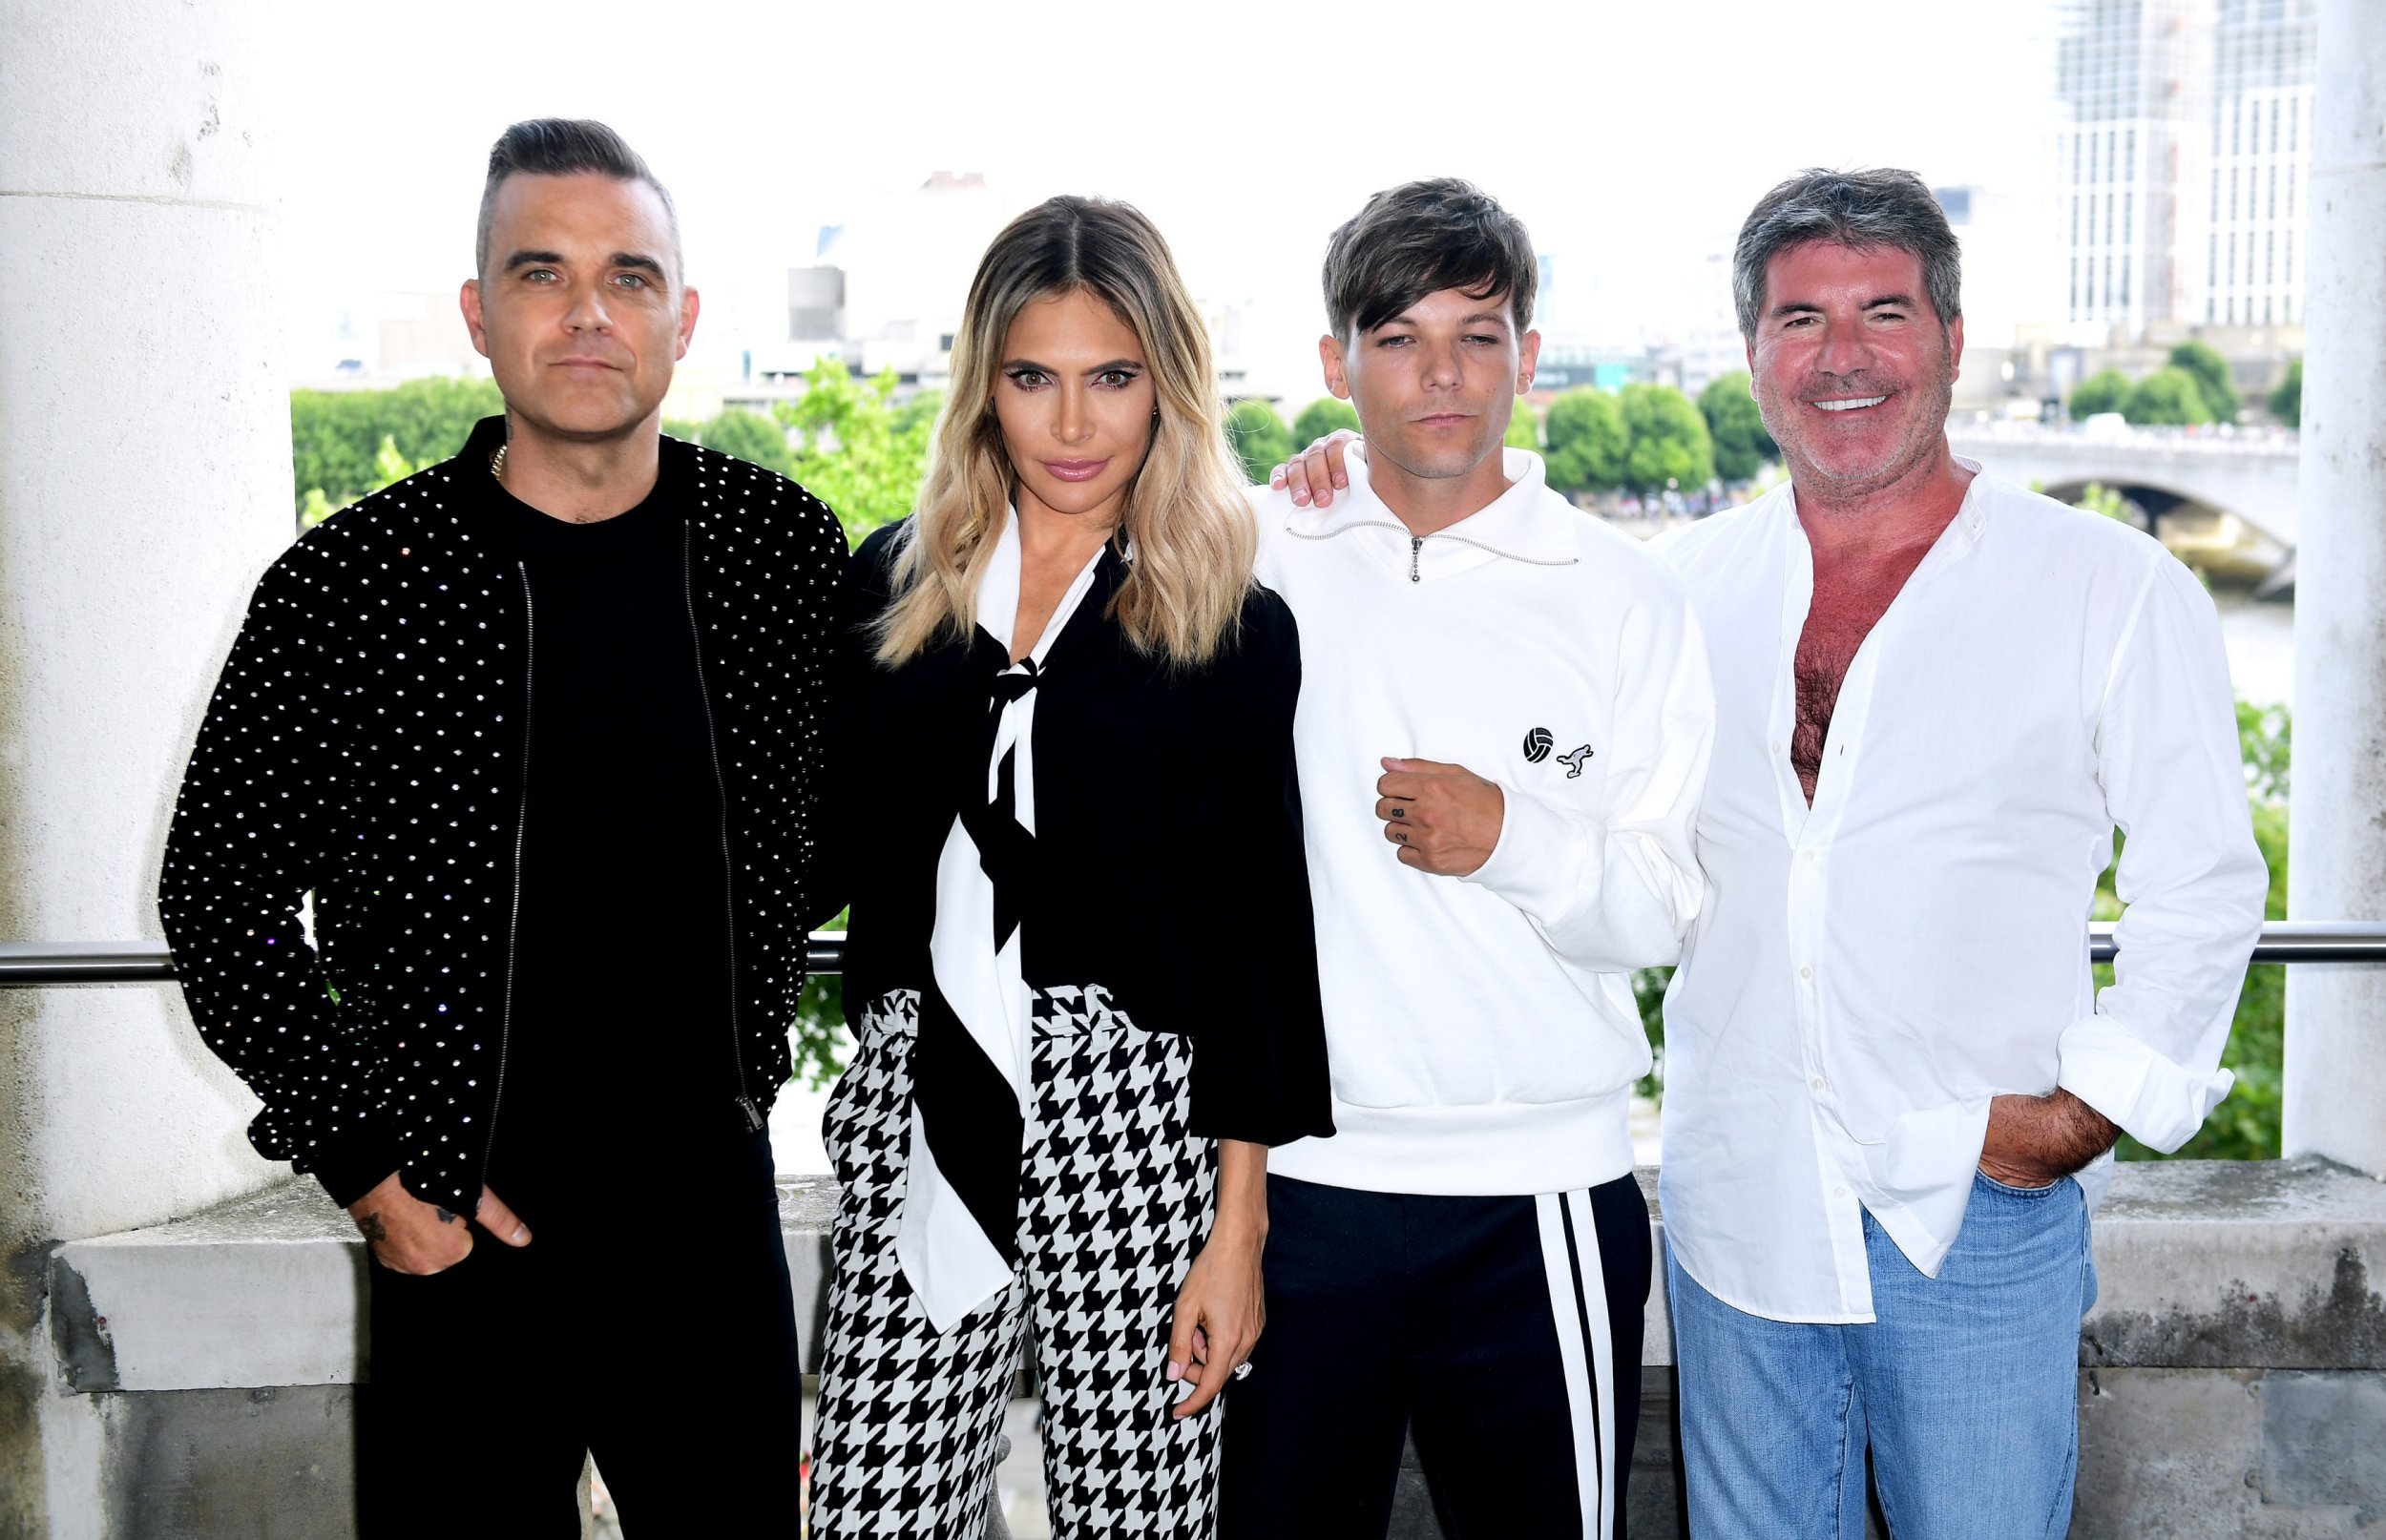 Robbie William, Ayda Field, Louis Tomlinson and Simon Cowell attending the X Factor photocall held at Somerset House, London. PRESS ASSOCIATION Photo. Picture date: Tuesday July 17, 2018. See PA story SHOWBIZ XFactor. Photo credit should read: Ian West/PA Wire.